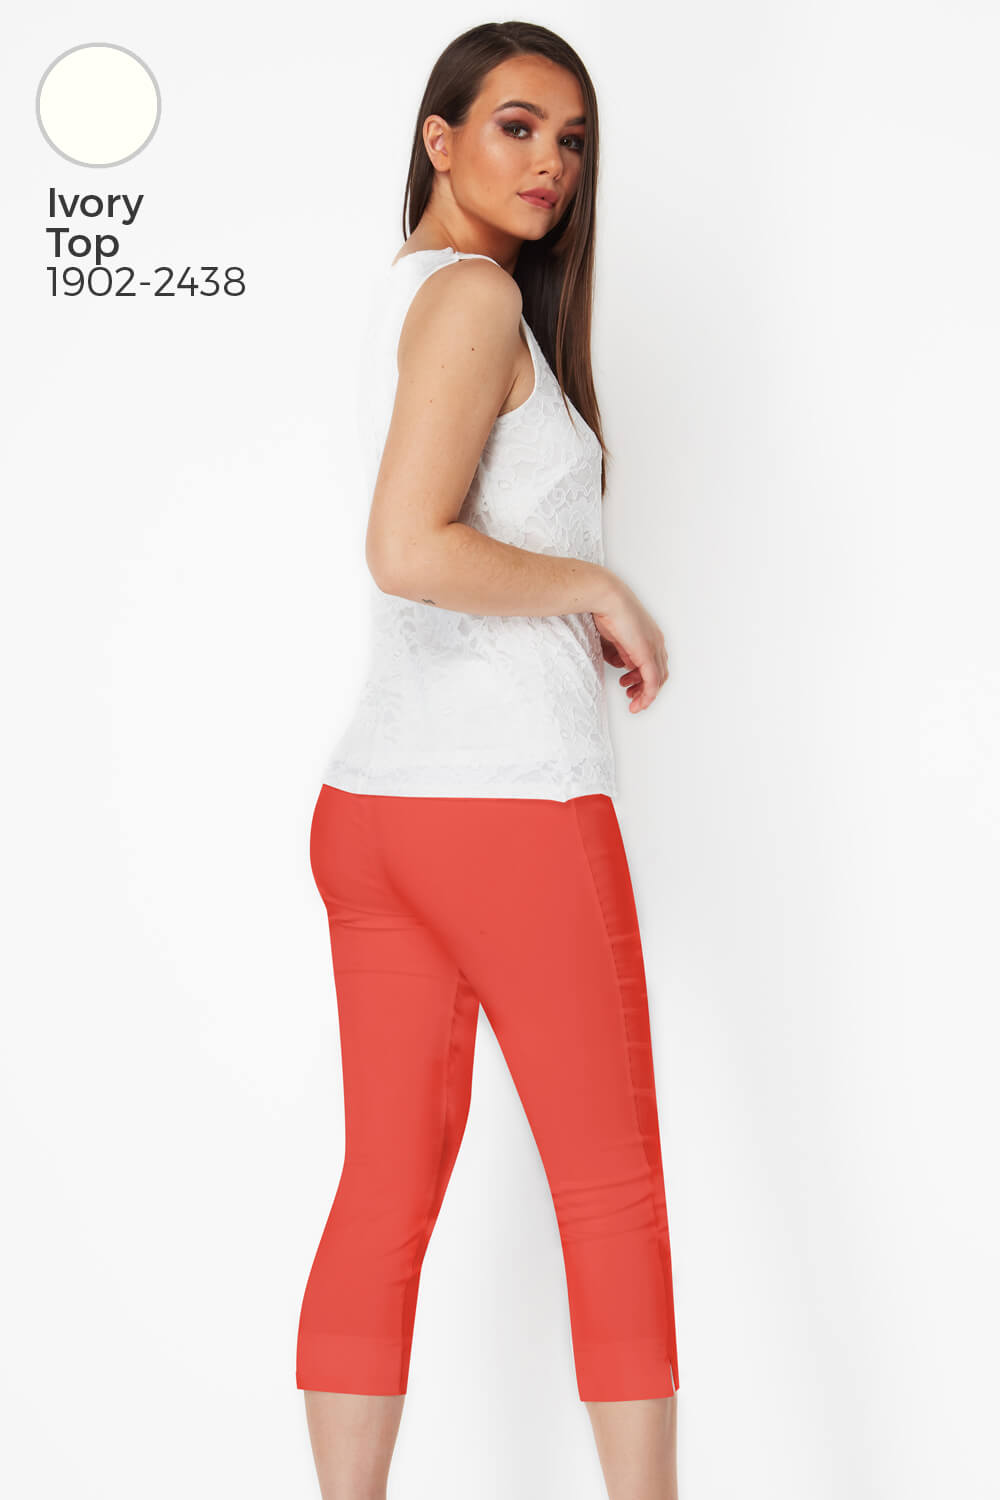 Roman-Originals-Women-Cropped-Stretch-Bengaline-Capri-Trousers-3-4-Thick-Legging 縮圖 178